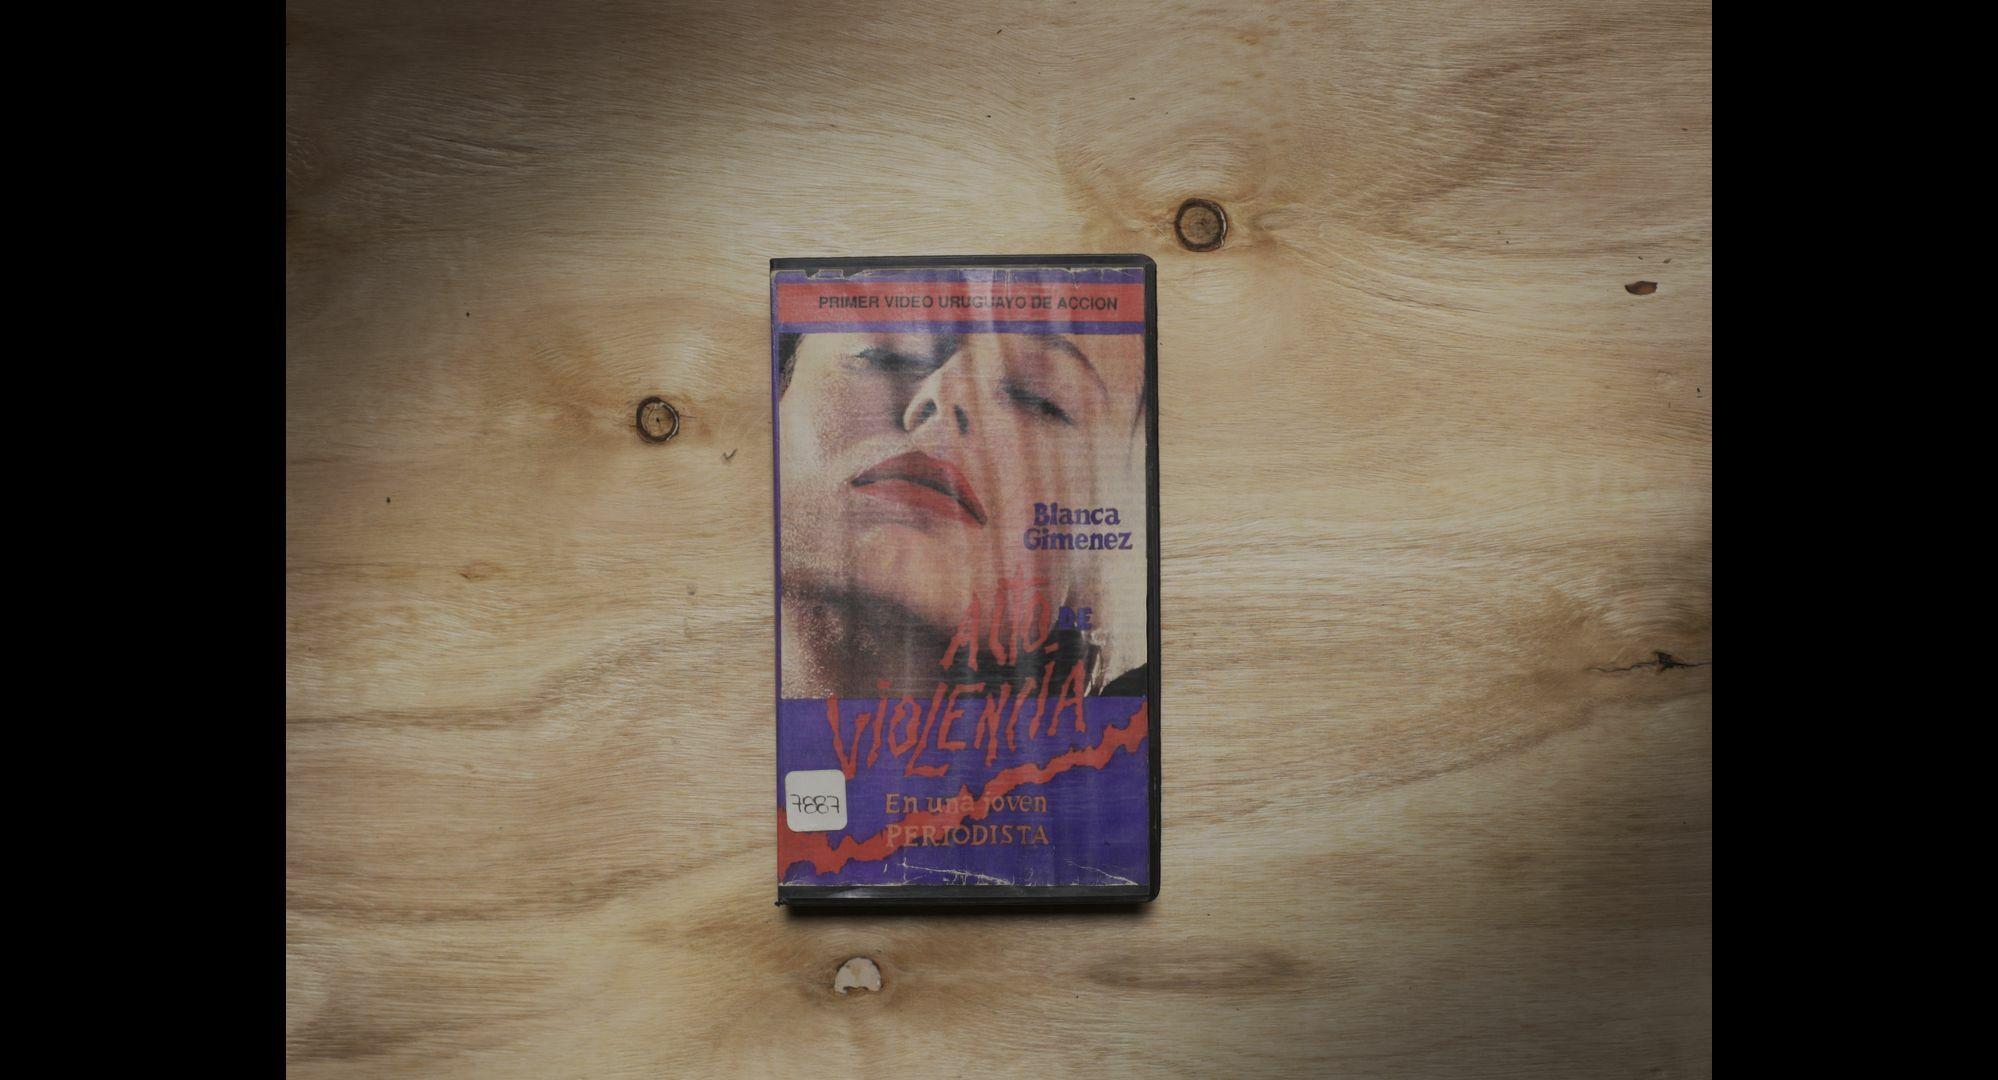 The VHS in question